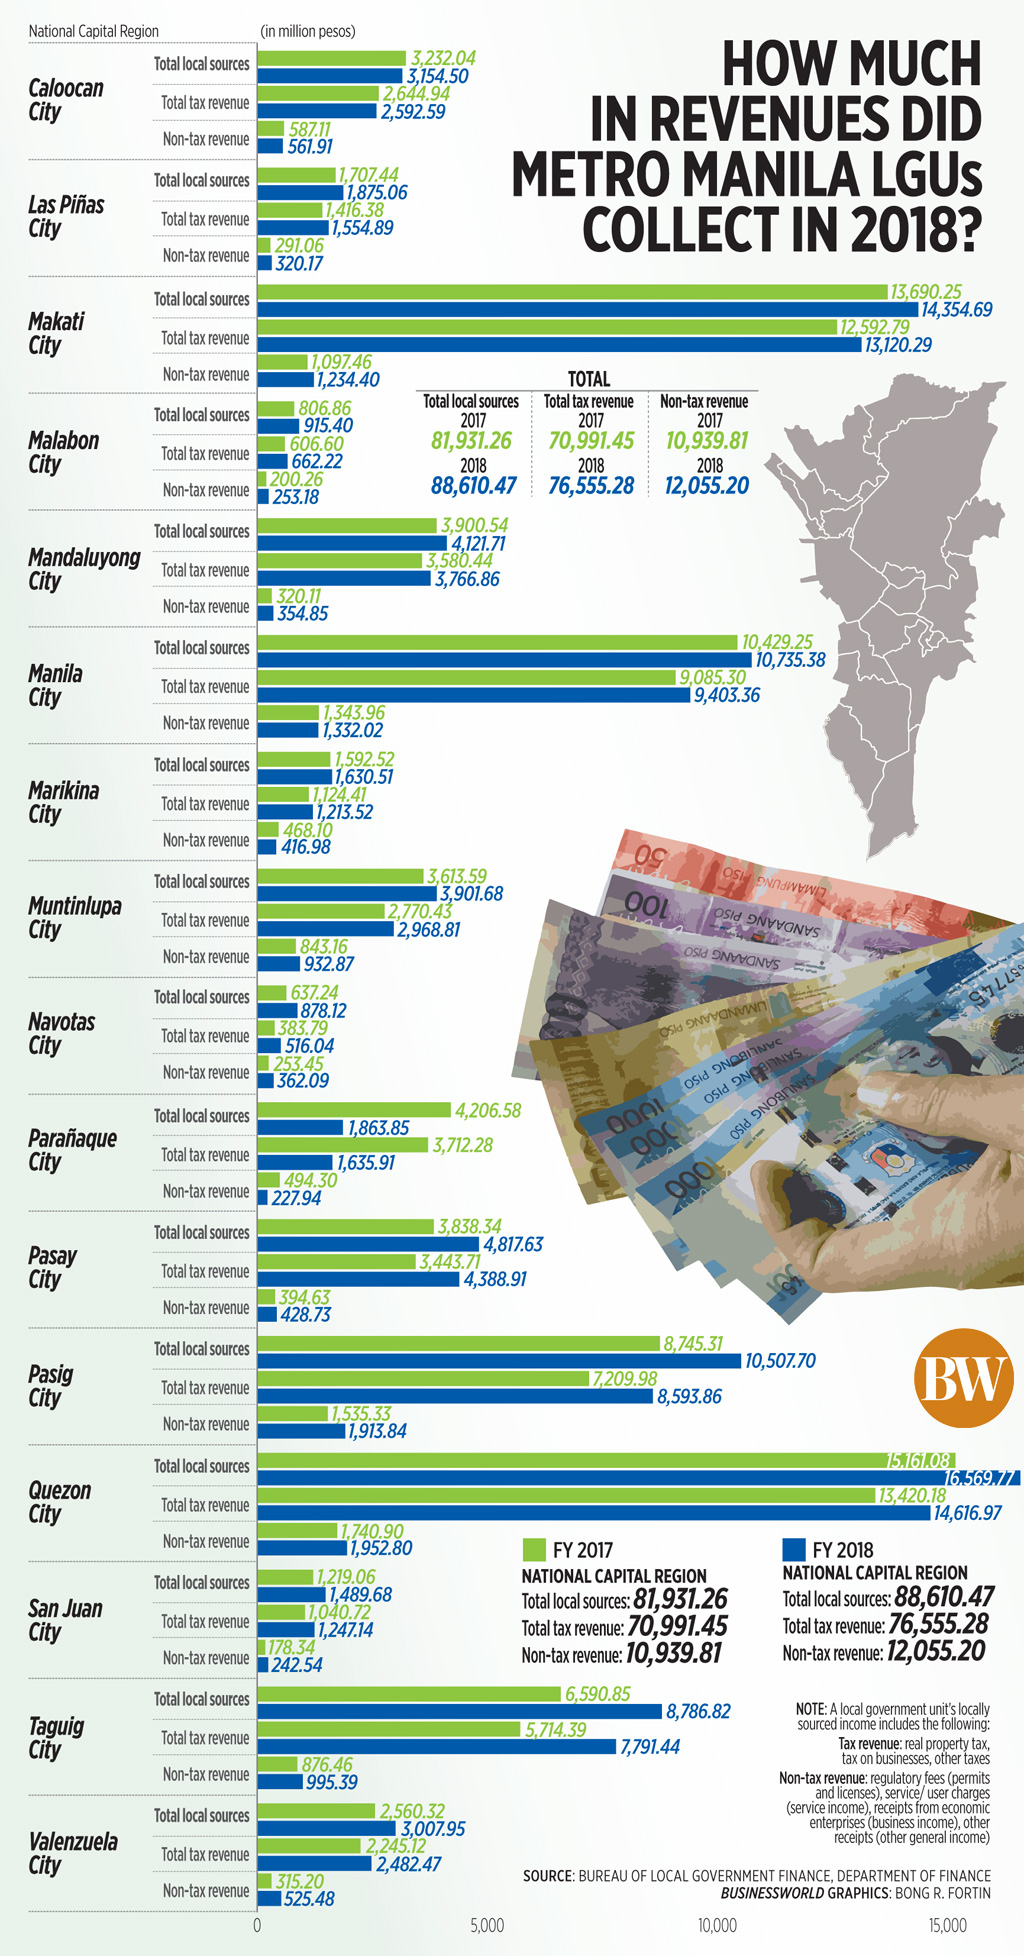 How much in revenues did Metro Manila LGUs collect in 2018?